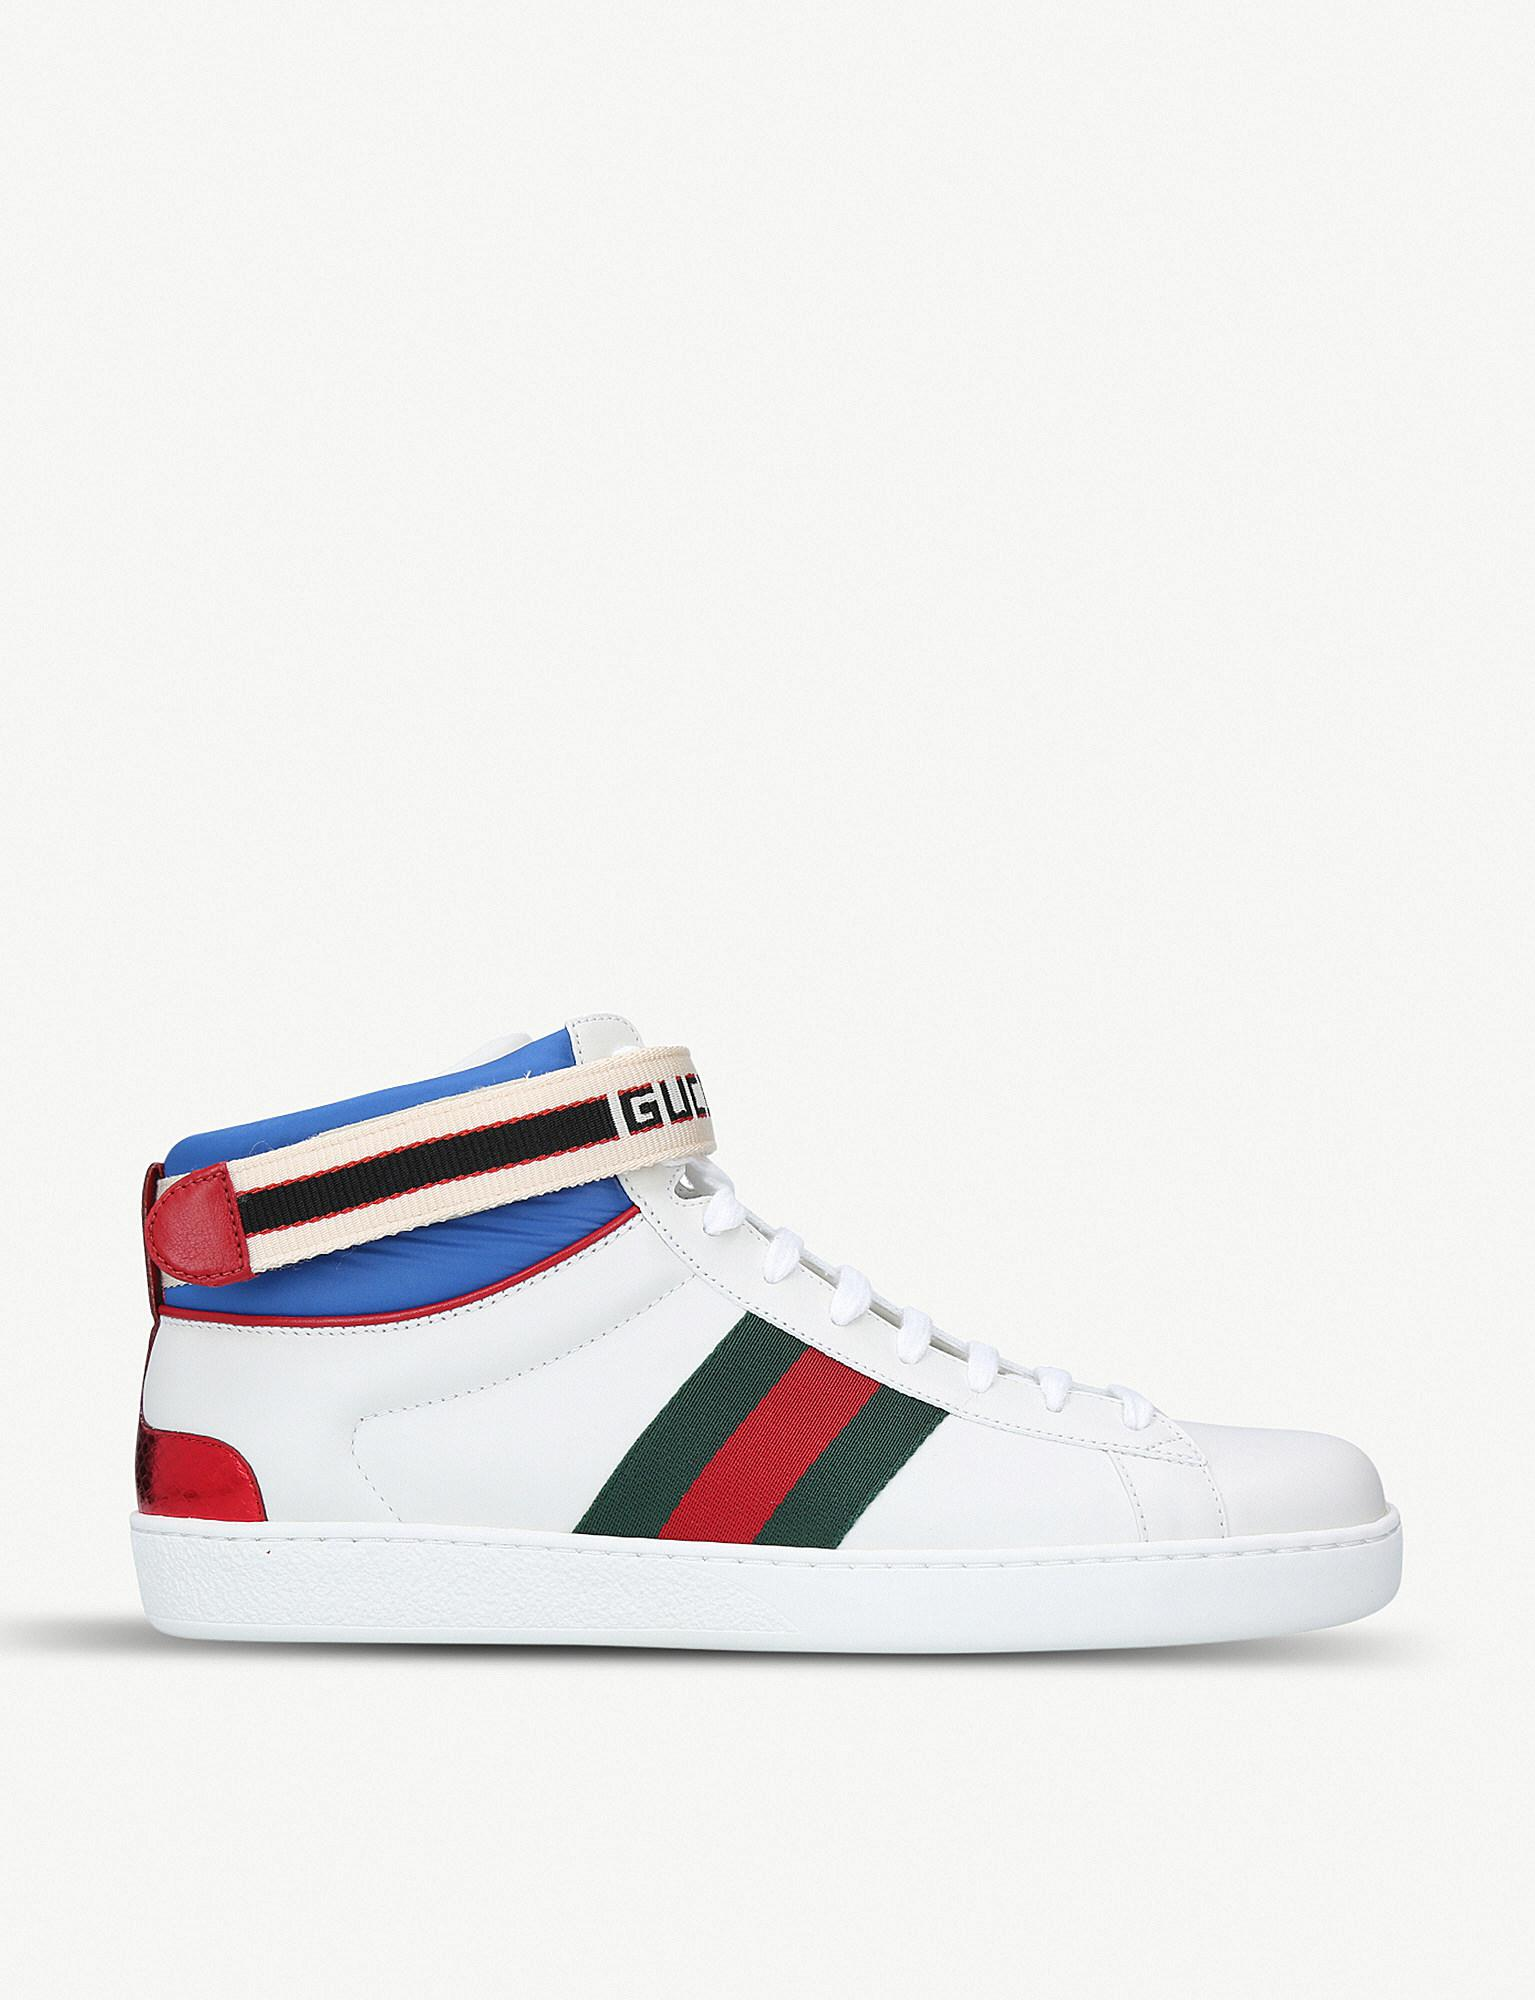 105c4905a3e Lyst - Gucci New Ace Leather High-top Trainers in White